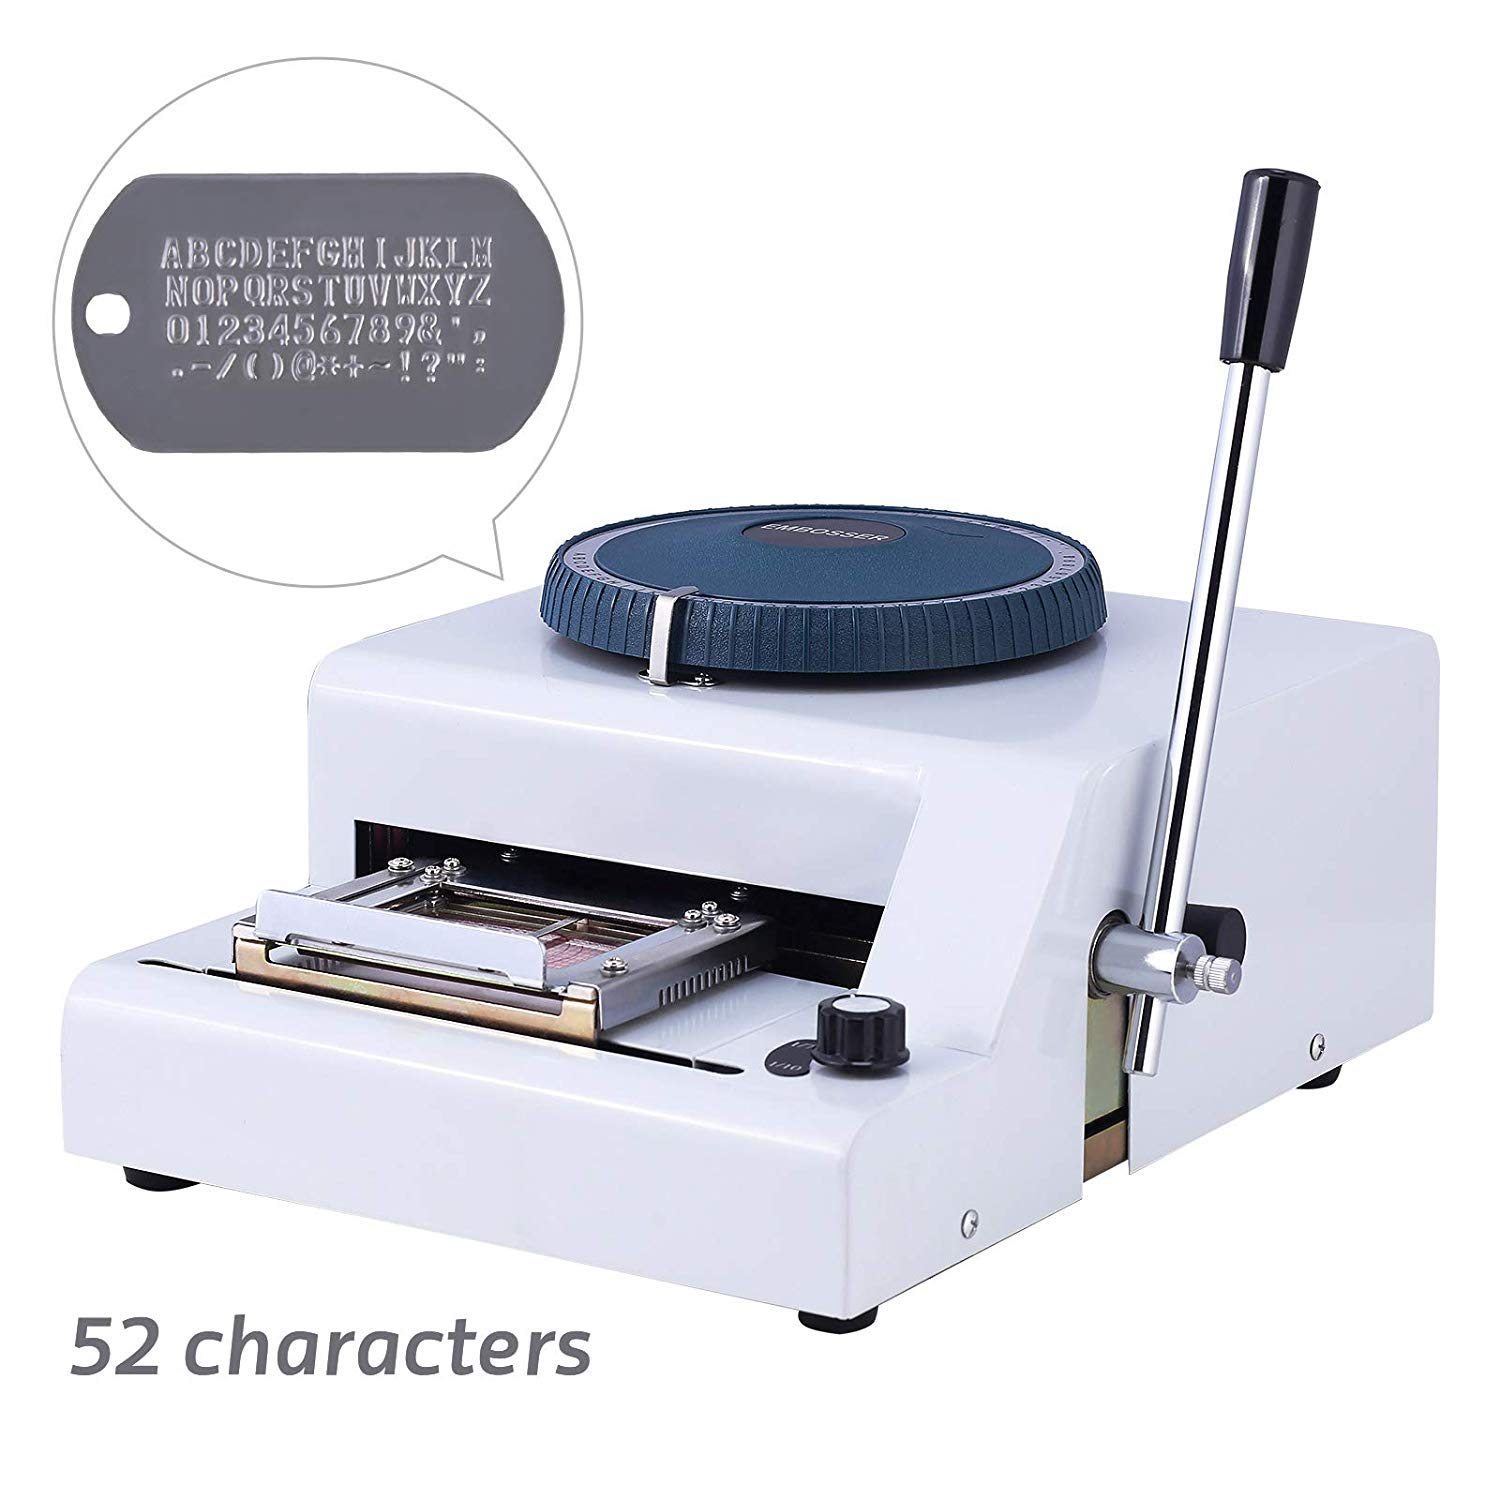 SUNCOO Embossing Machine Letter Manual Metal Dog ID Tag Embosser 52 Characters